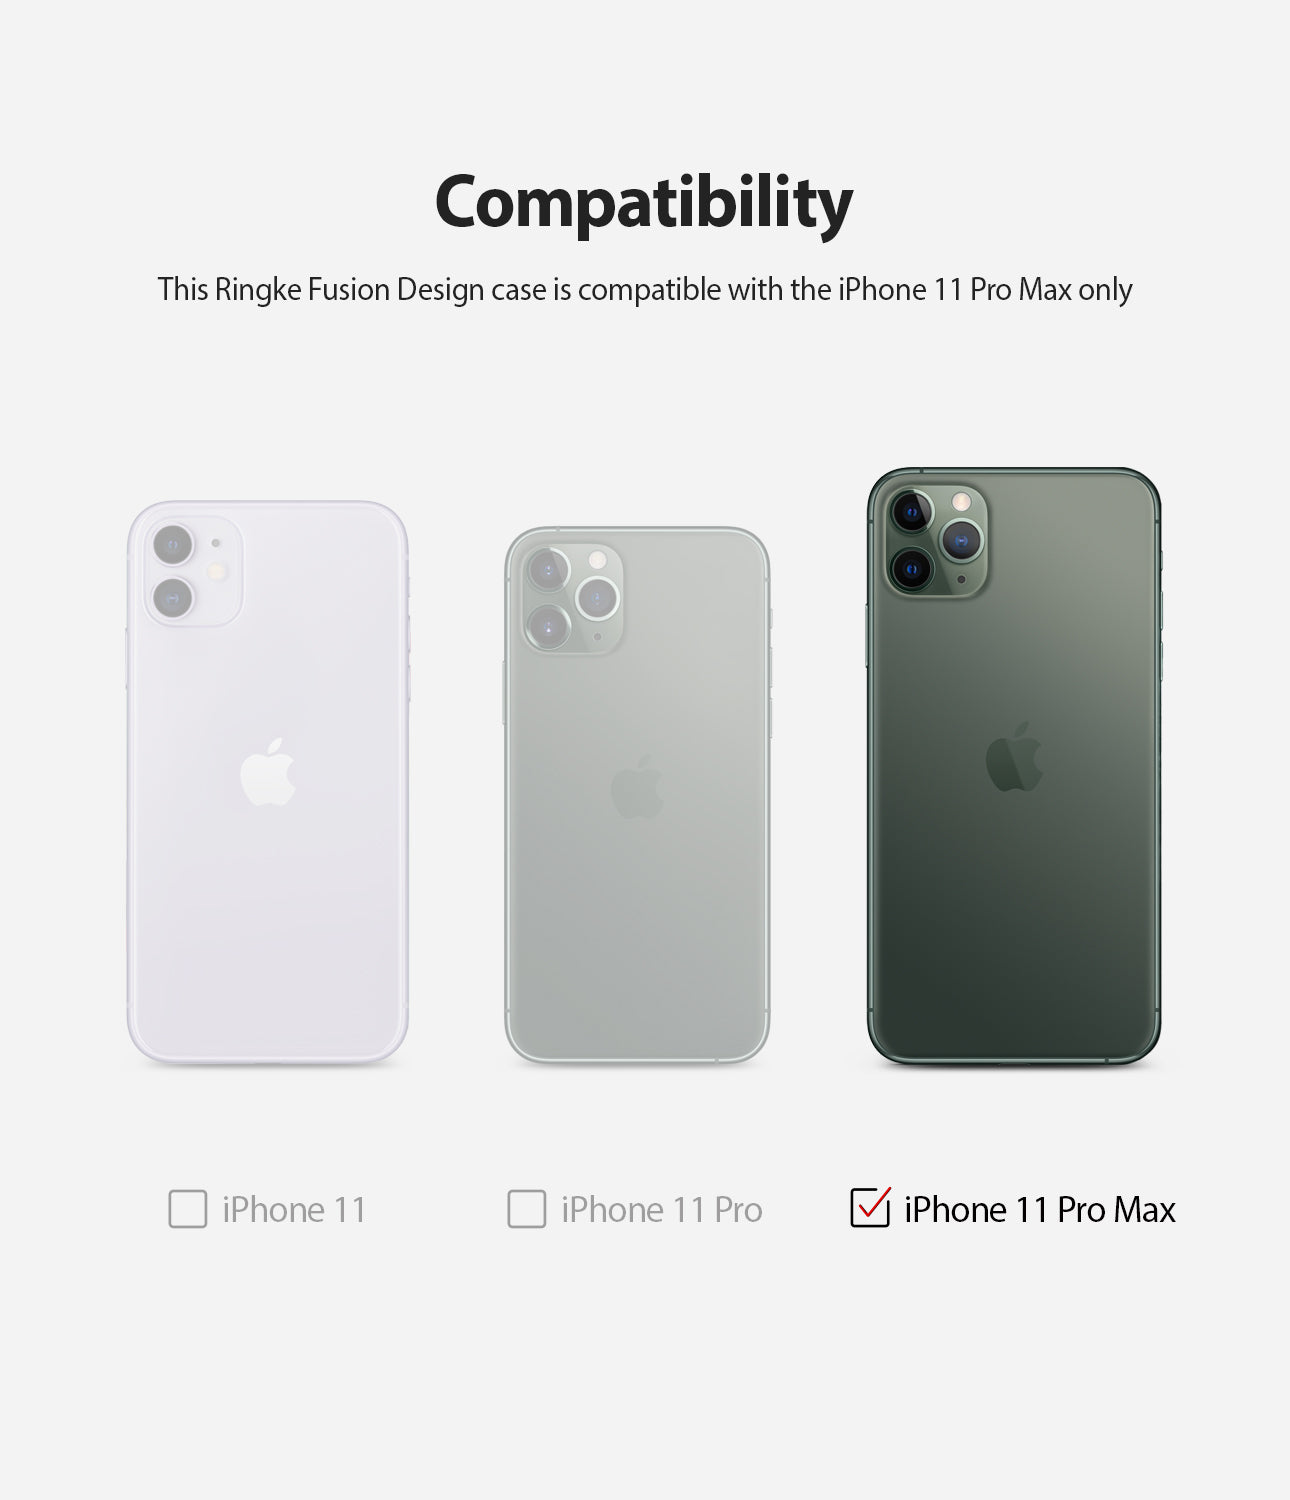 compatible with iphone 11 pro max